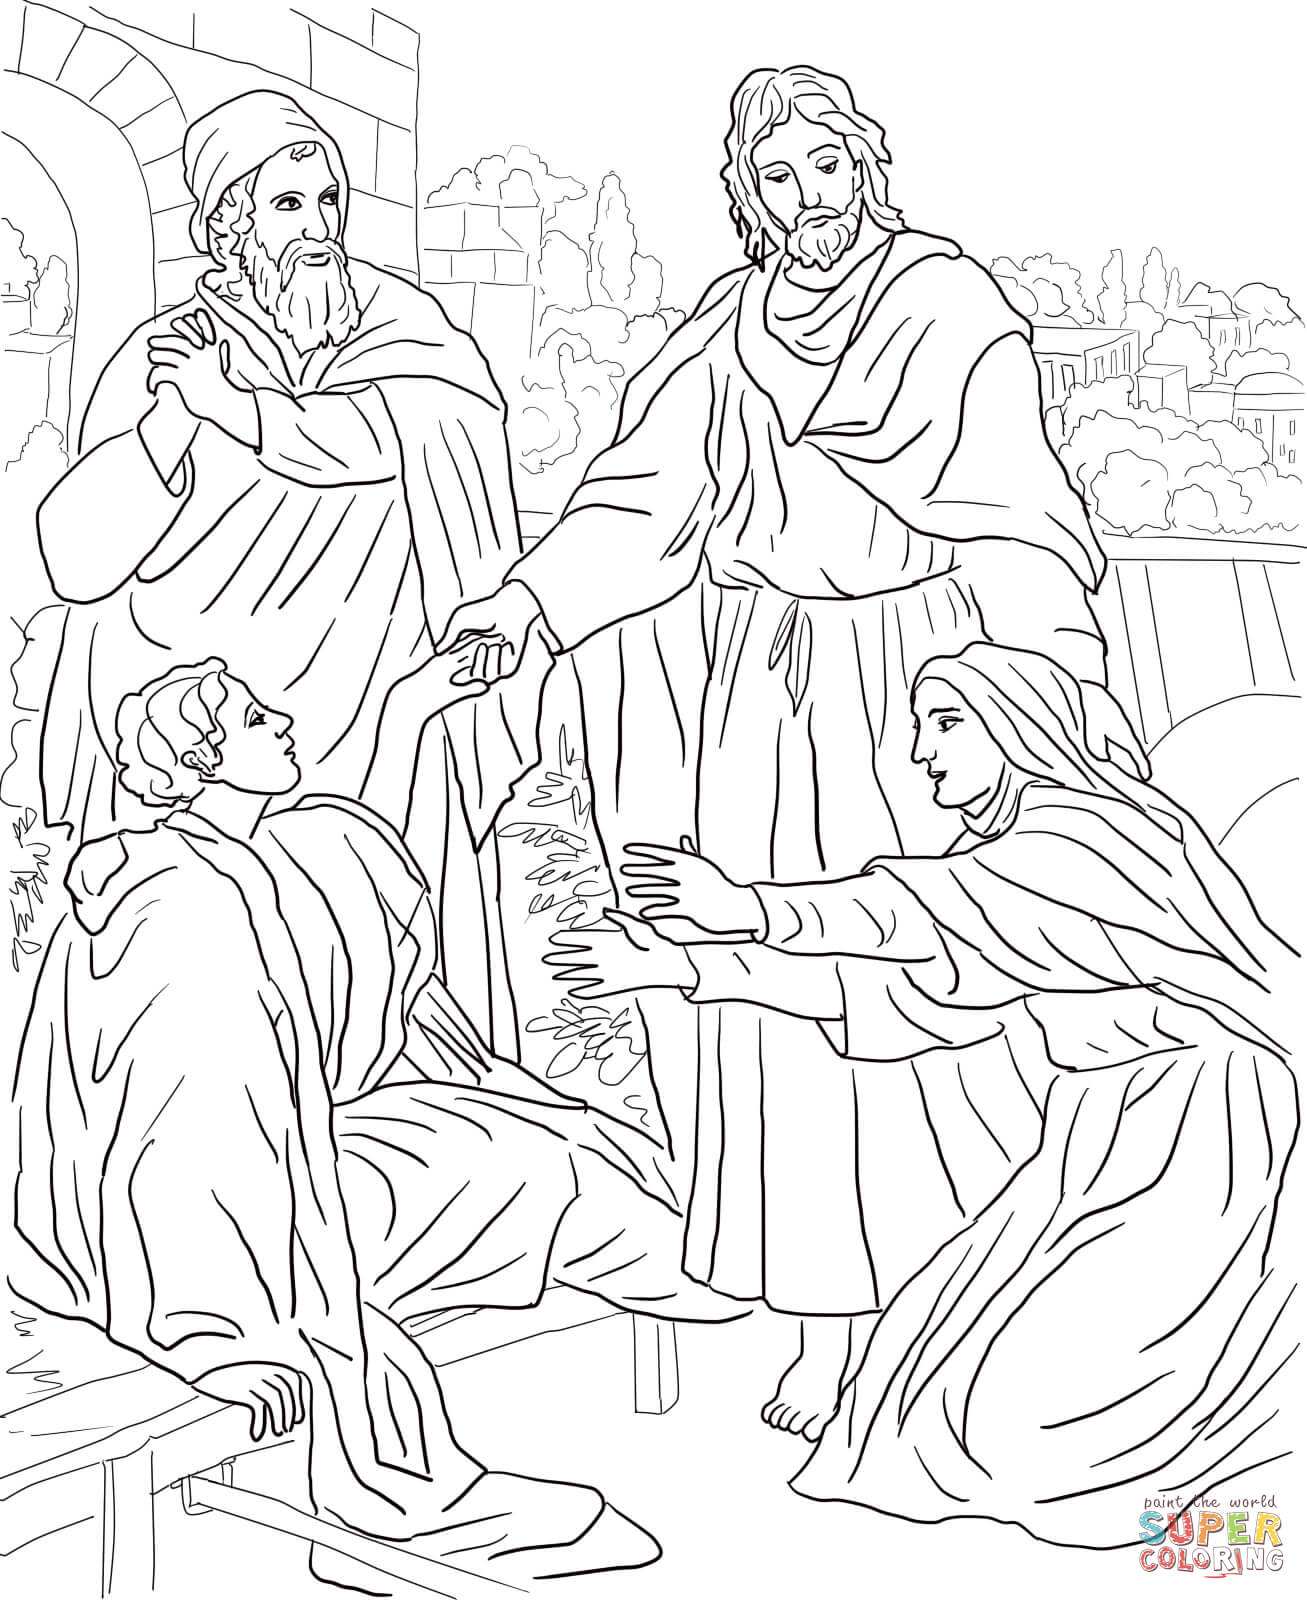 jesus raises lazarus coloring page coloring home. Black Bedroom Furniture Sets. Home Design Ideas